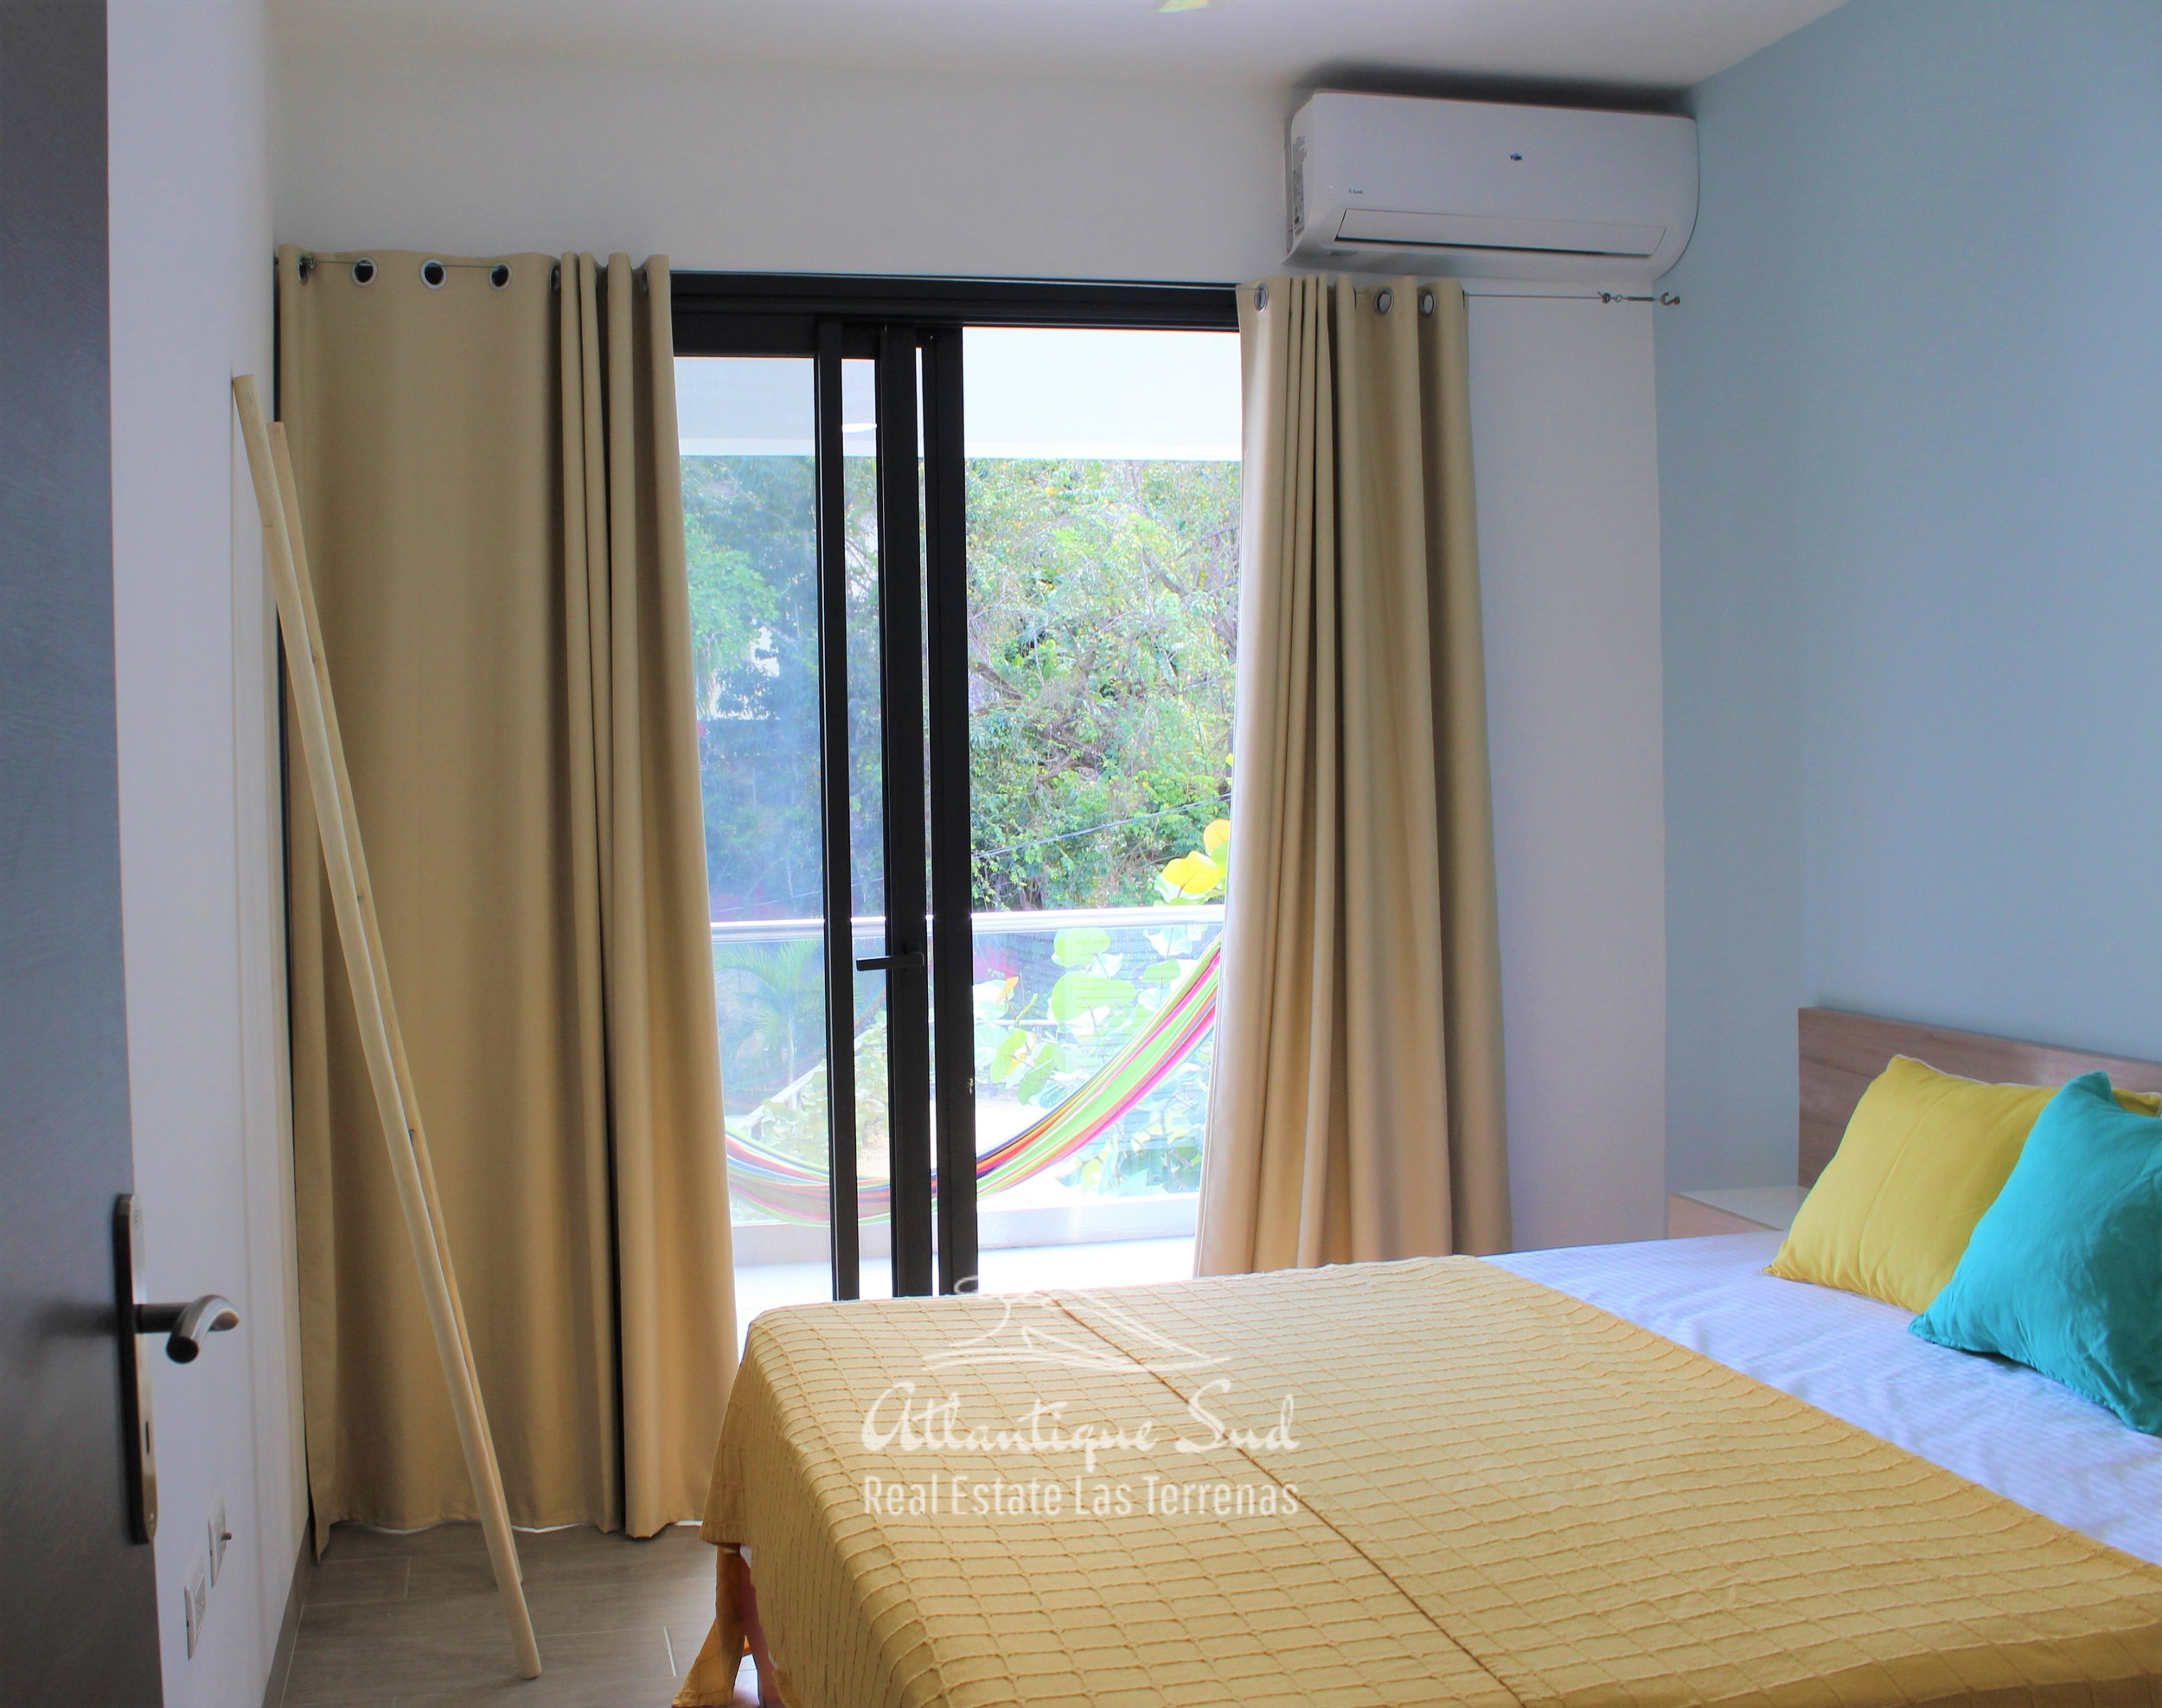 Cozy-1-bedroom-apartment-in-gated-community-close-to-the-center-of-lasterrenas5.jpg